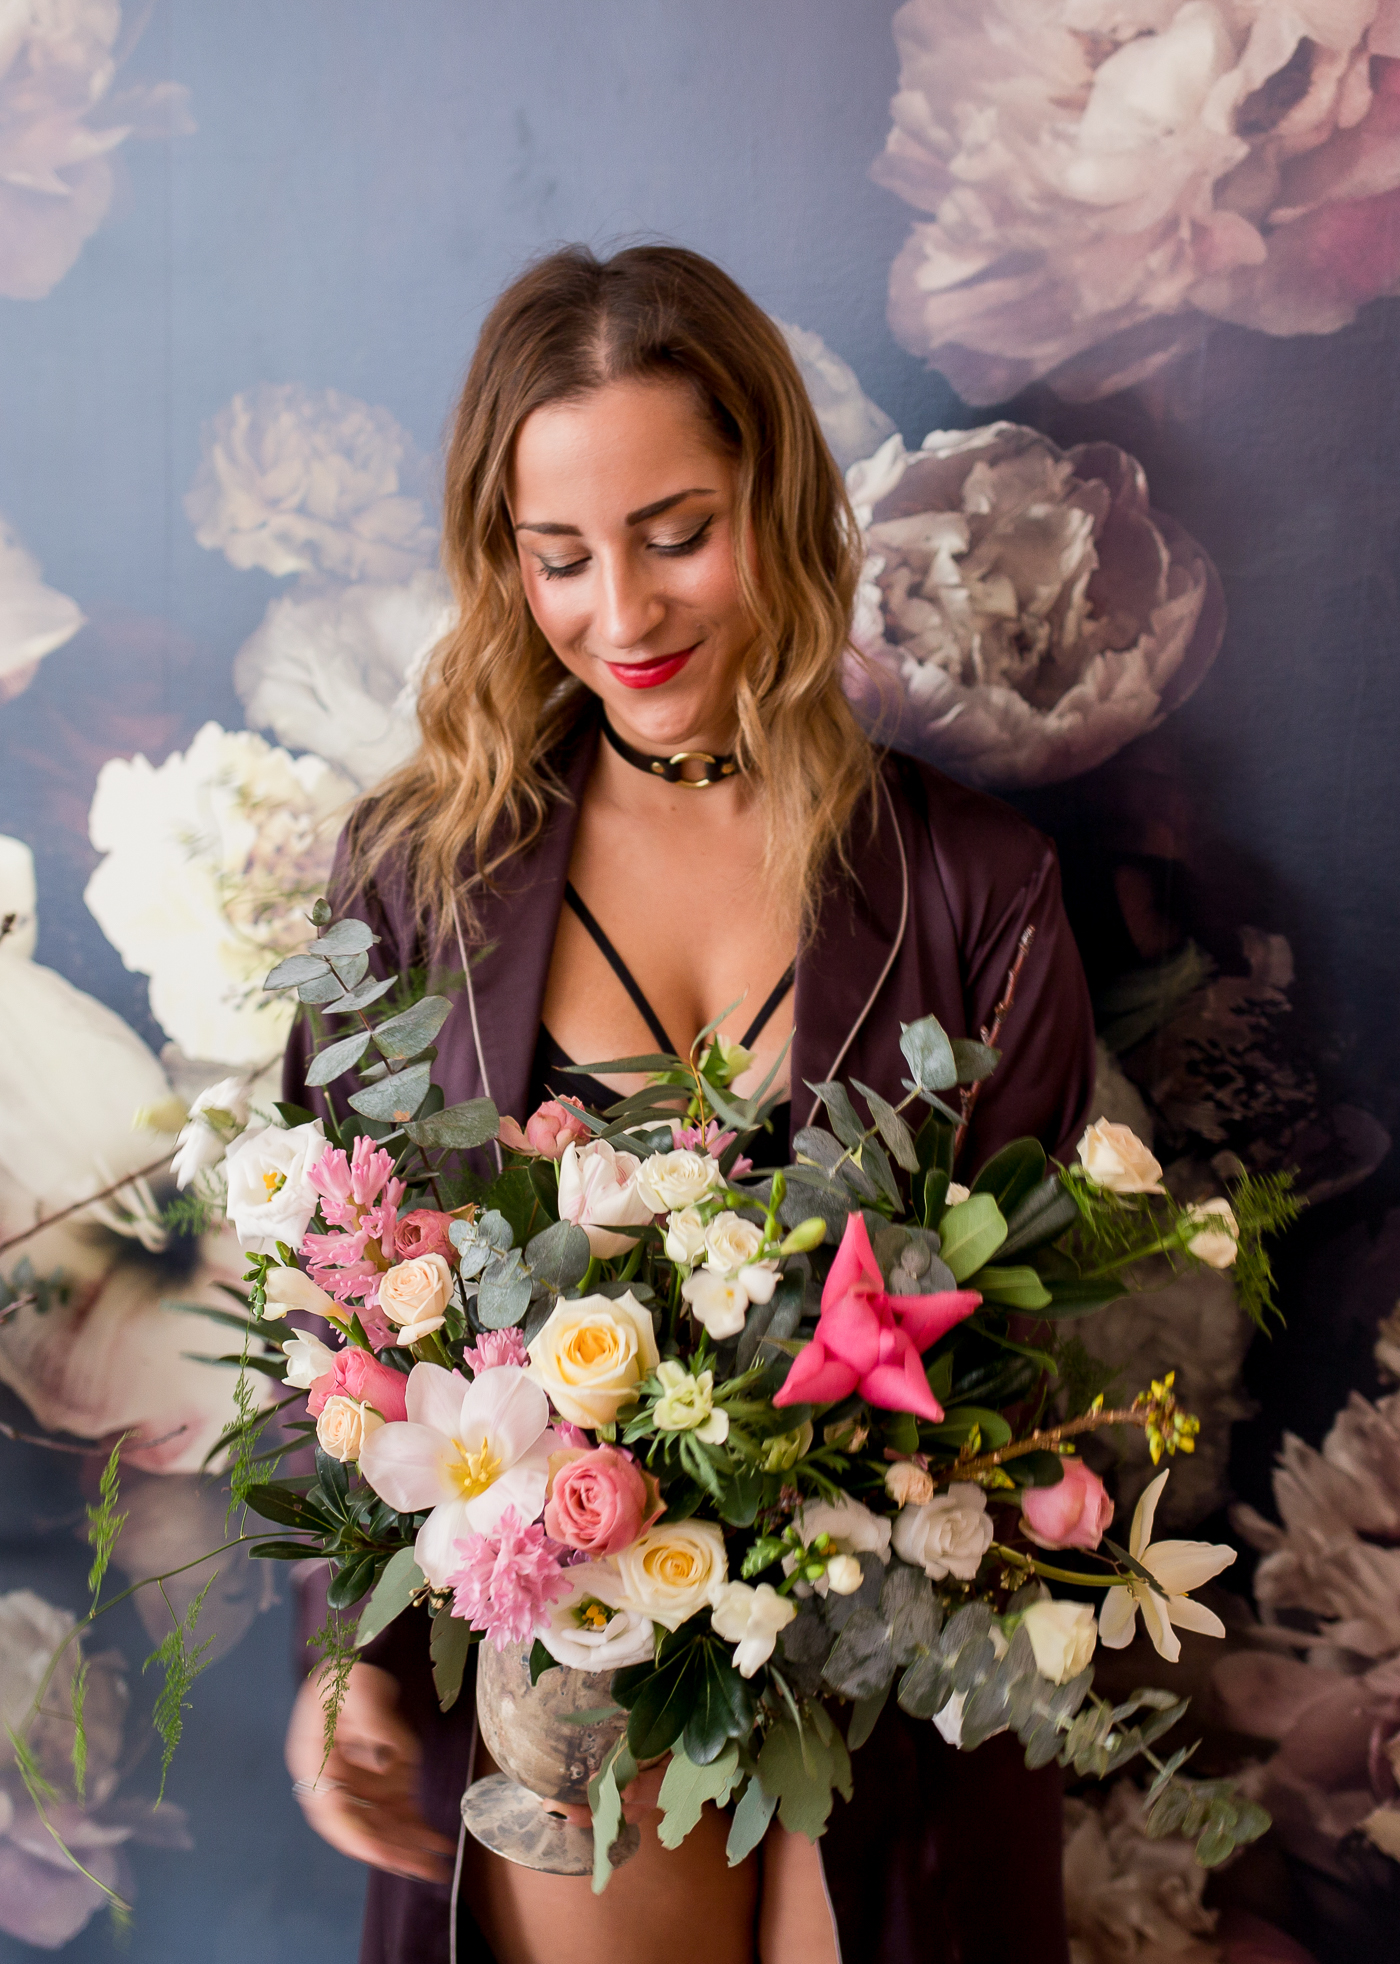 Toronto blogger photoshoot at Stole My Heart, featuring a floral arrangement from Wildnorth Flowers